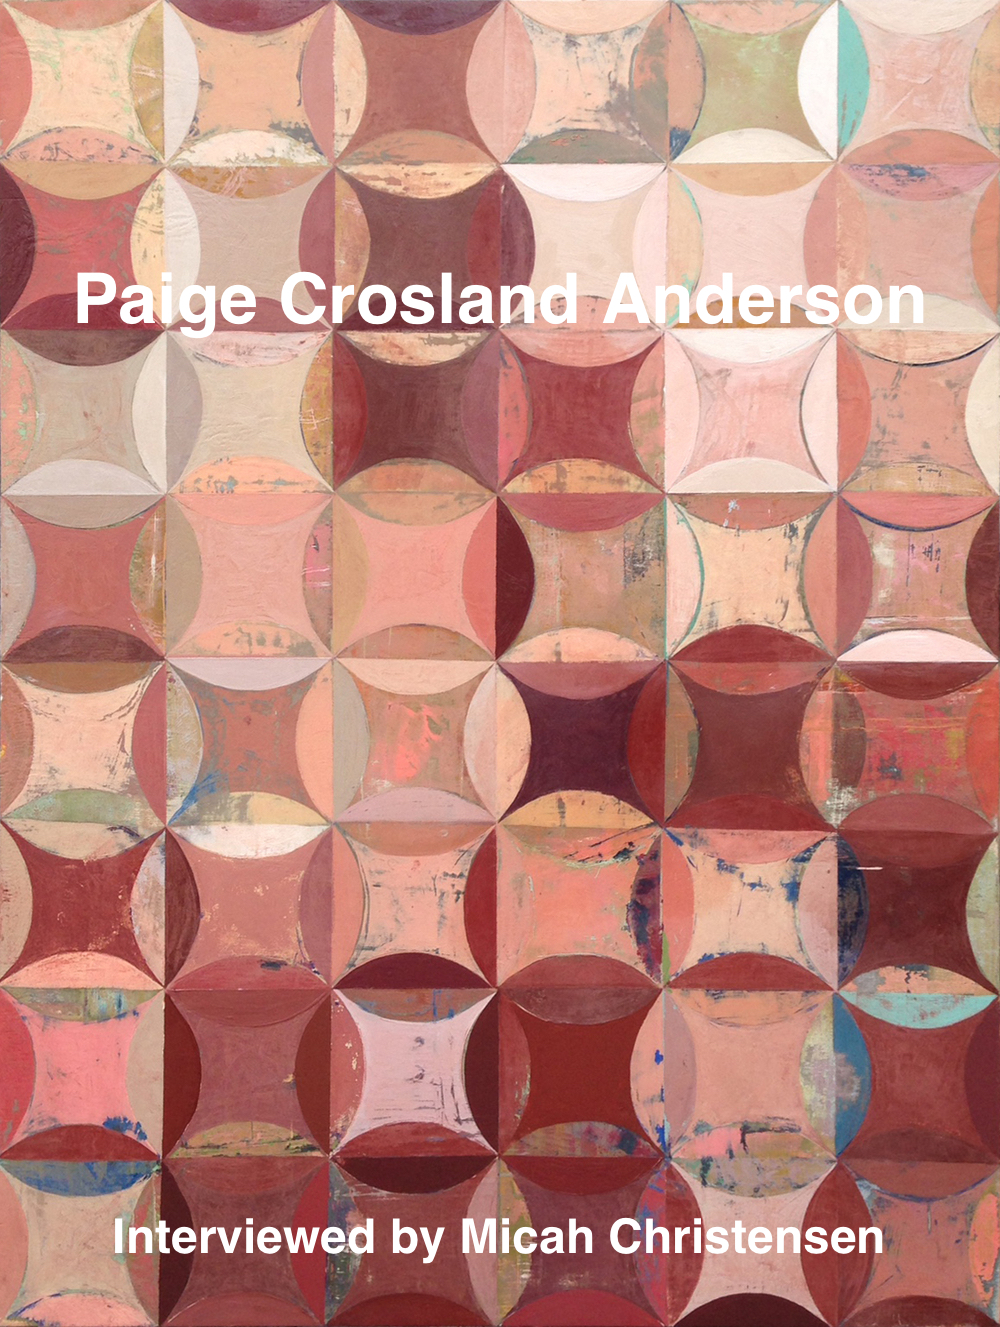 The descendant of pioneer artist George M. Ottinger, from a young age Paige Crosland Anderson knew she wanted to be involved in the arts. After getting her BFA from Brigham Young University, she started honing her unique style. Anderson's abstract paintings — many inspired by patterns in hand-made quilts — provide a different perspective on the seemingly mundane gospel of our everyday lives